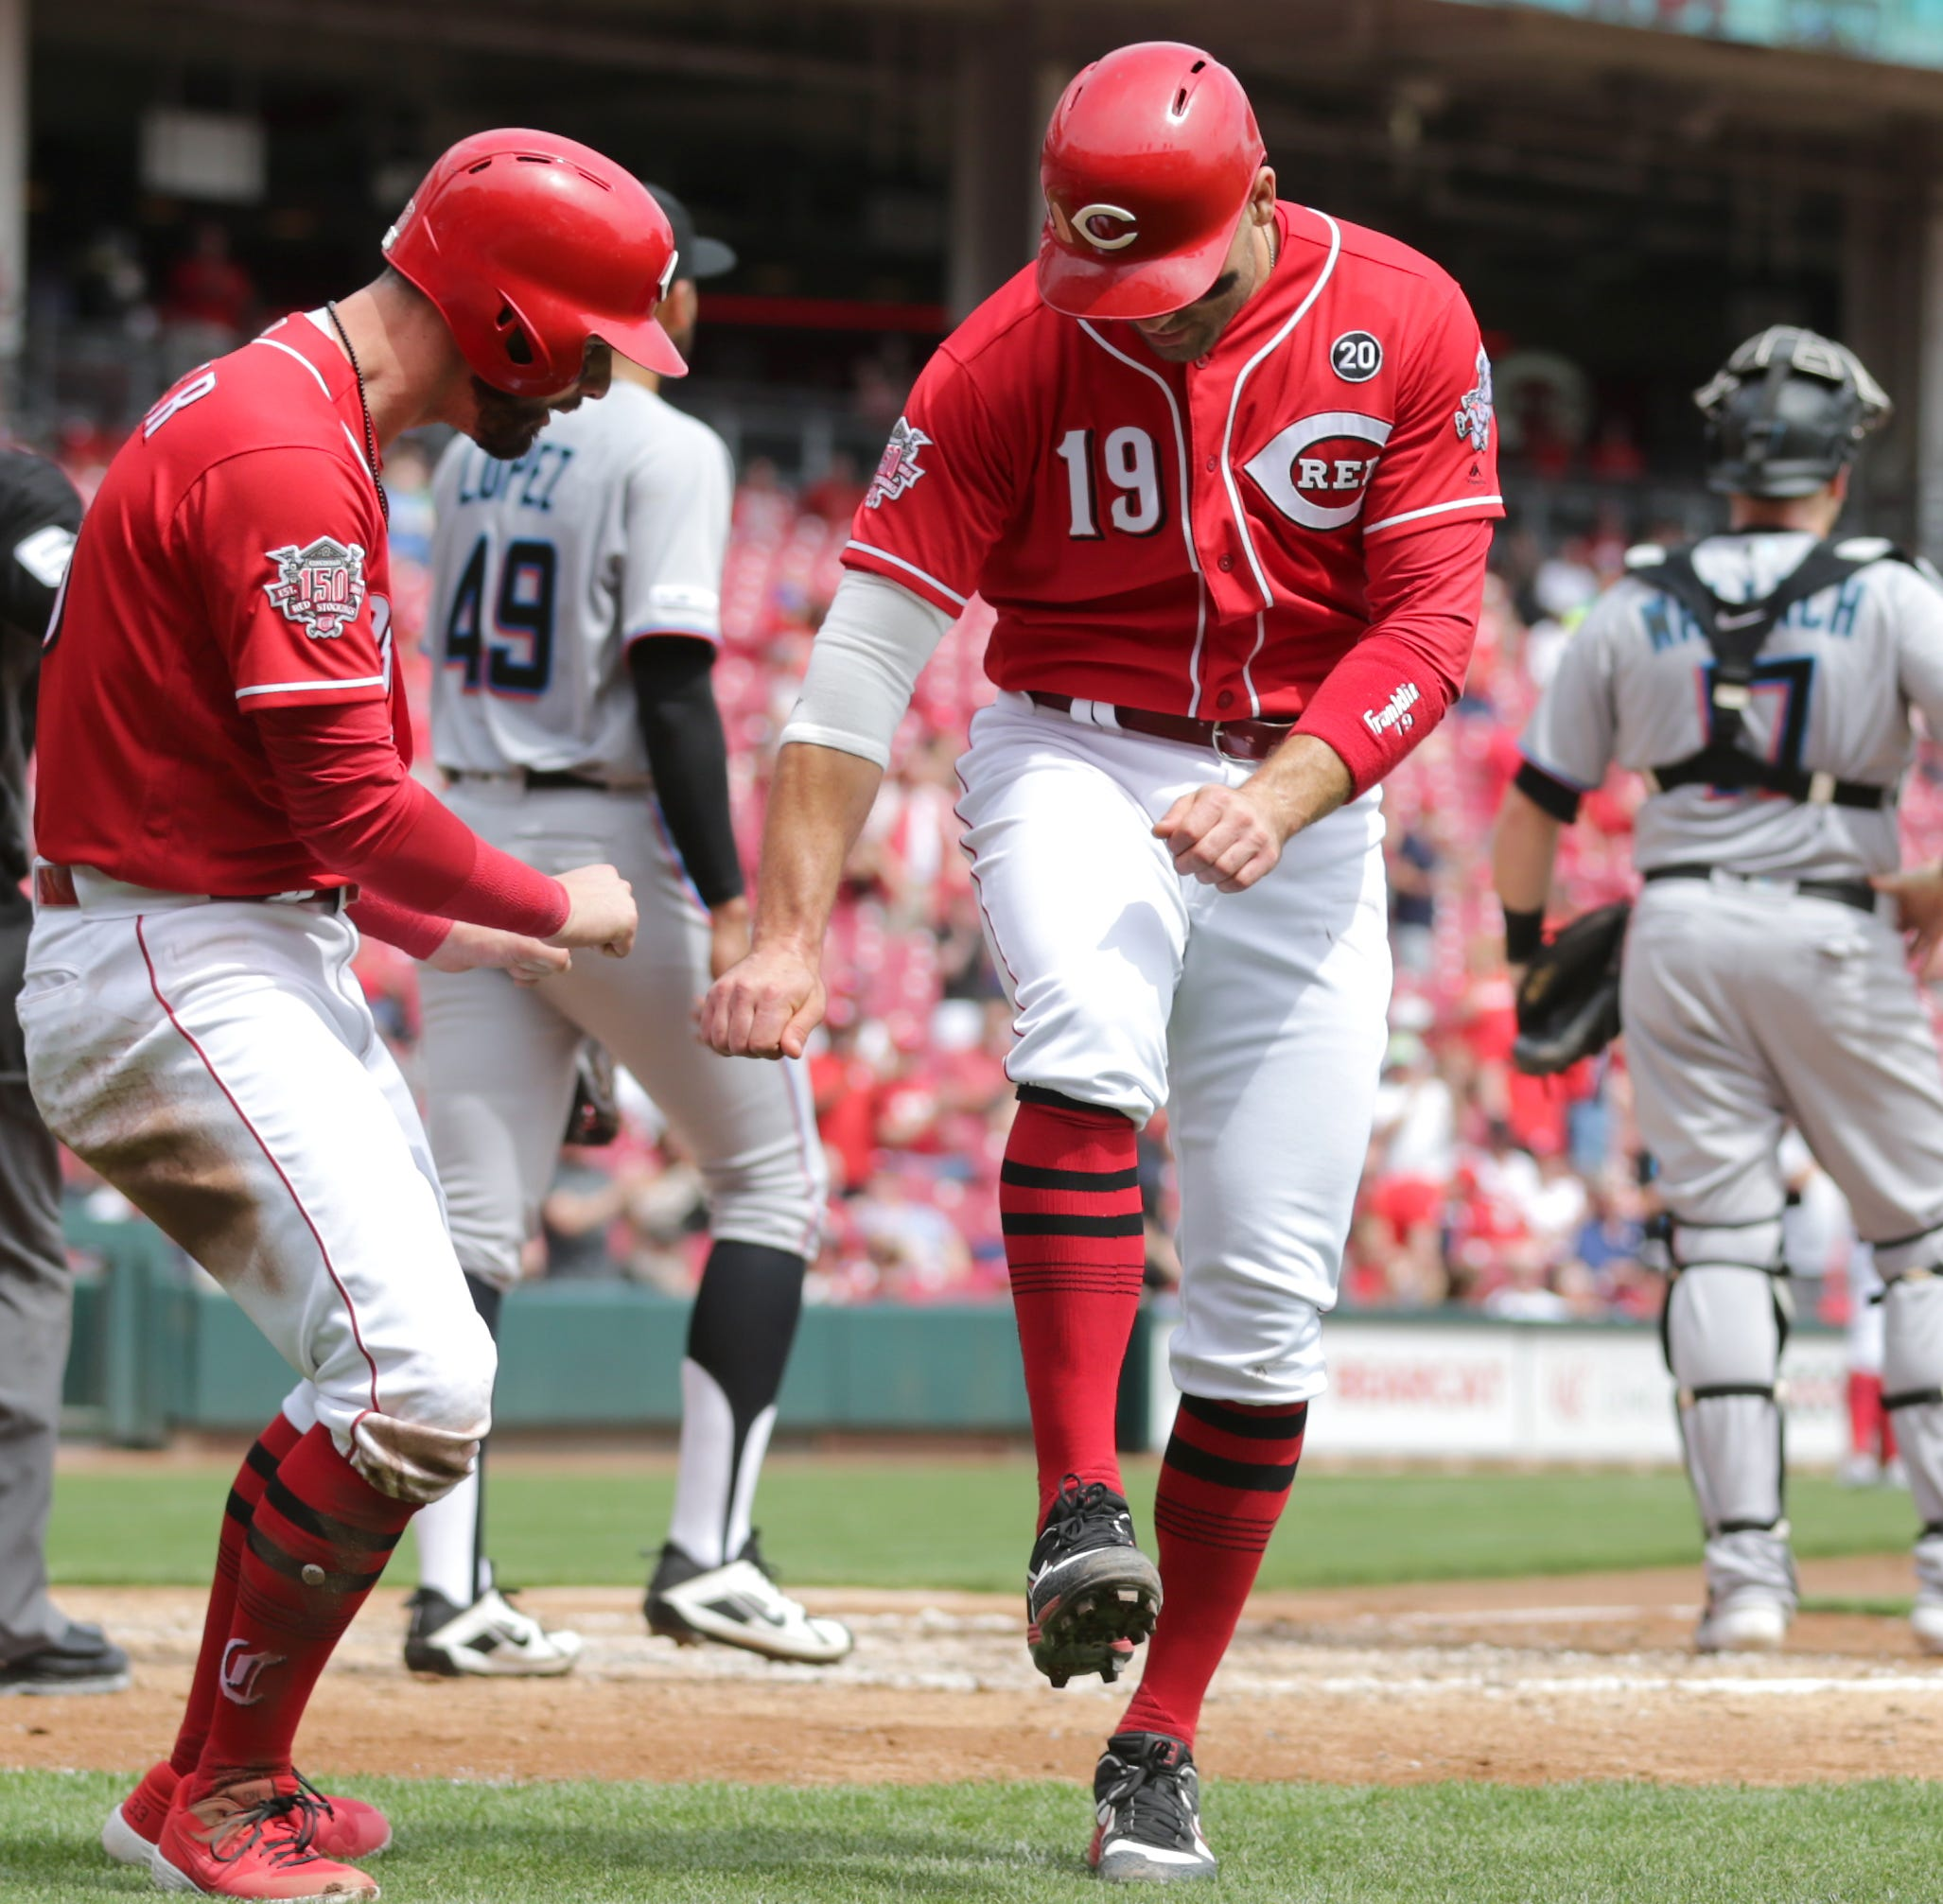 Cincinnati Reds complete sweep with 5-0 shutout win against Miami Marlins